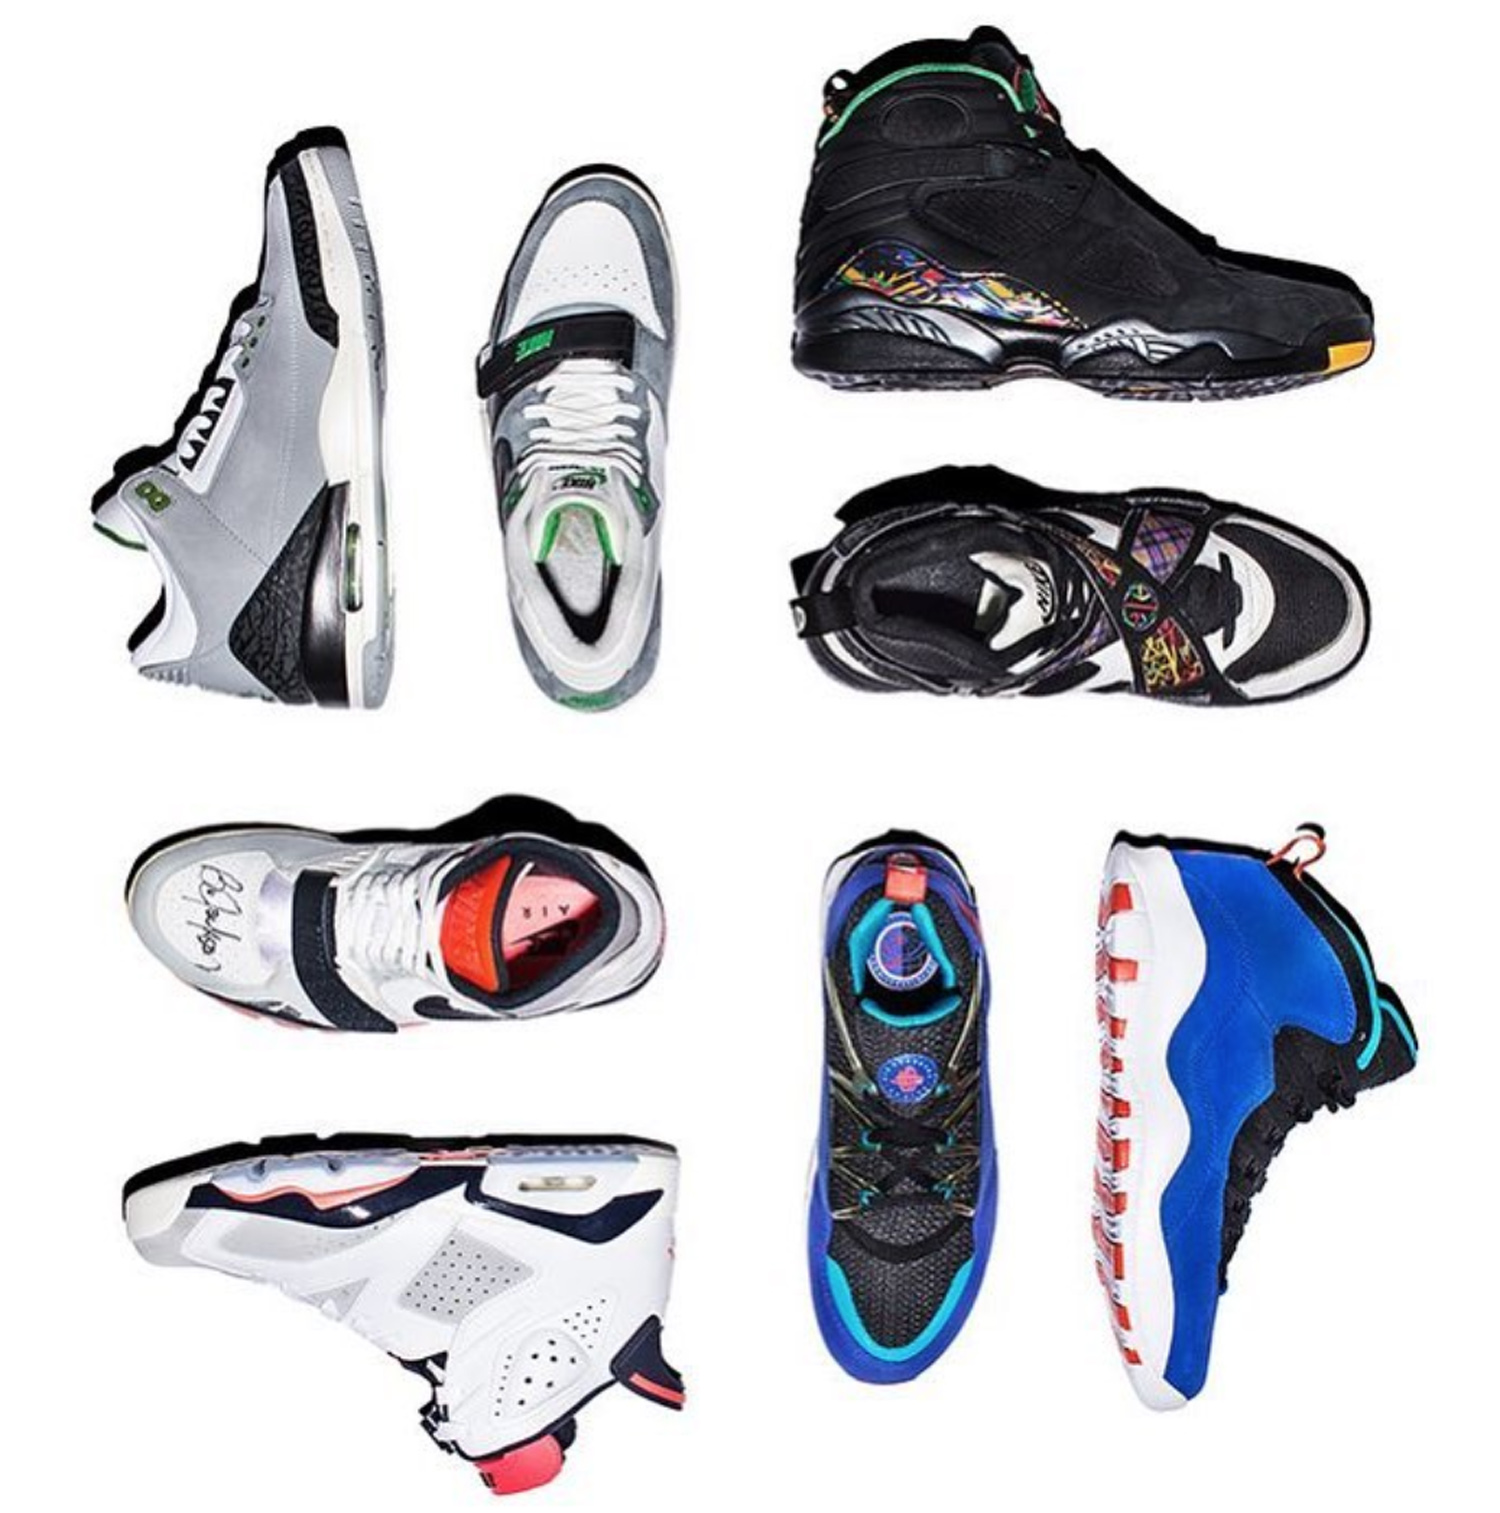 new arrival f0faf d90db Jordan Brand Draws Inspiration From Some of Tinker ...